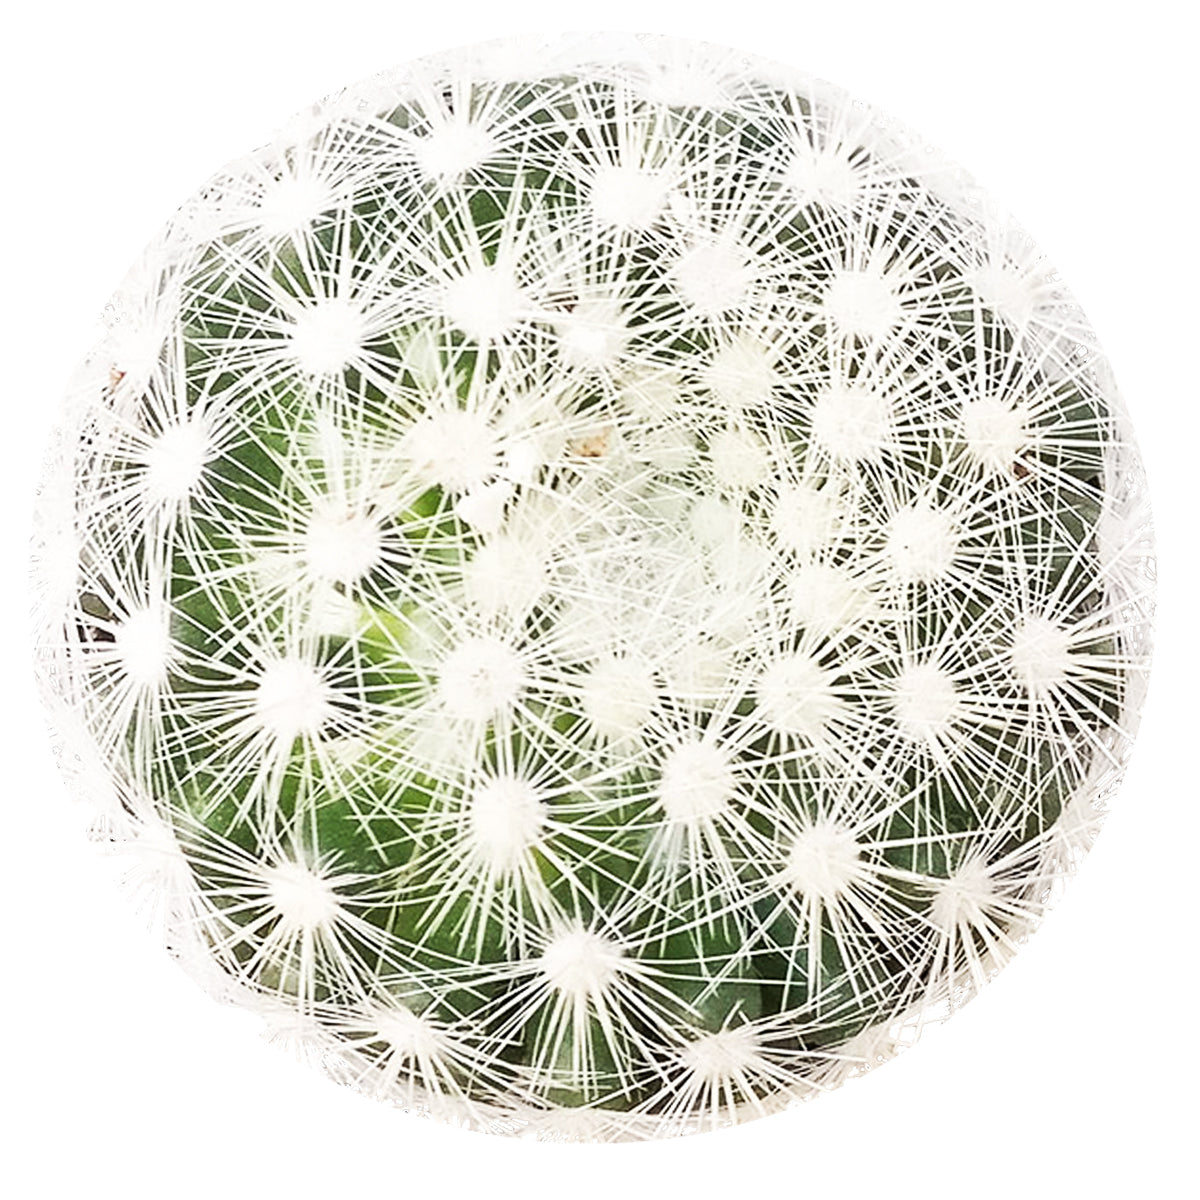 Mammillaria carmenae albiflora, succulent care guide, monthly succulents, Succulents, how to grow succulents, cactus, succulents shop in California, indoor succulents, succulent care, Mammillaria carmenae albiflora in California, How to grow Mammillaria carmenae albiflora